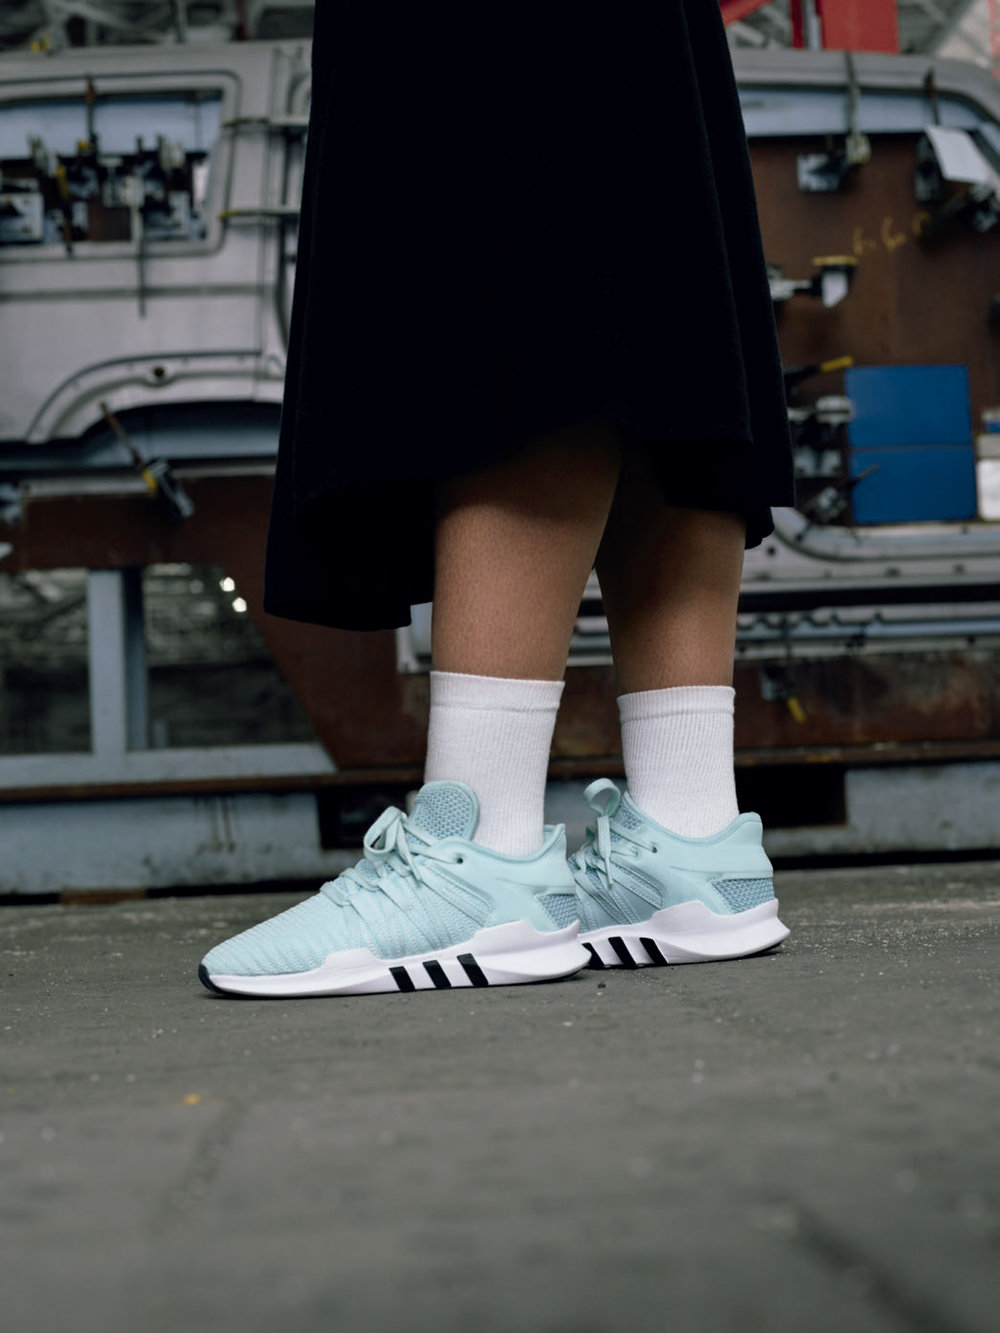 H20841_OR_Originals_EQT_FW17_Imagery_Social_Assets_August-Fashion_Specialist_Female_04_low.jpg